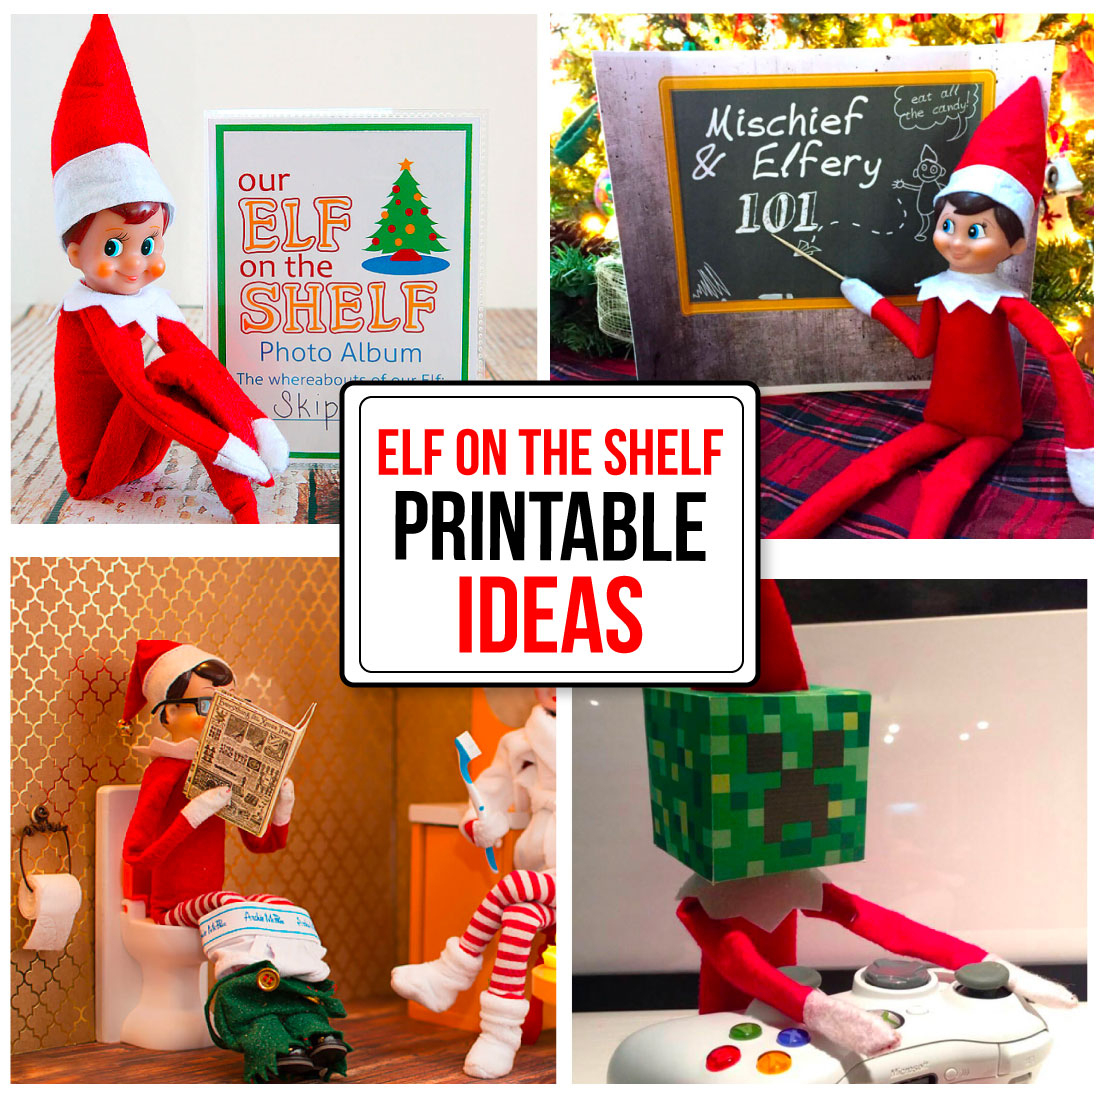 Printable Elf On The Shelf Ideas - Elf On The Shelf Free Printable Ideas